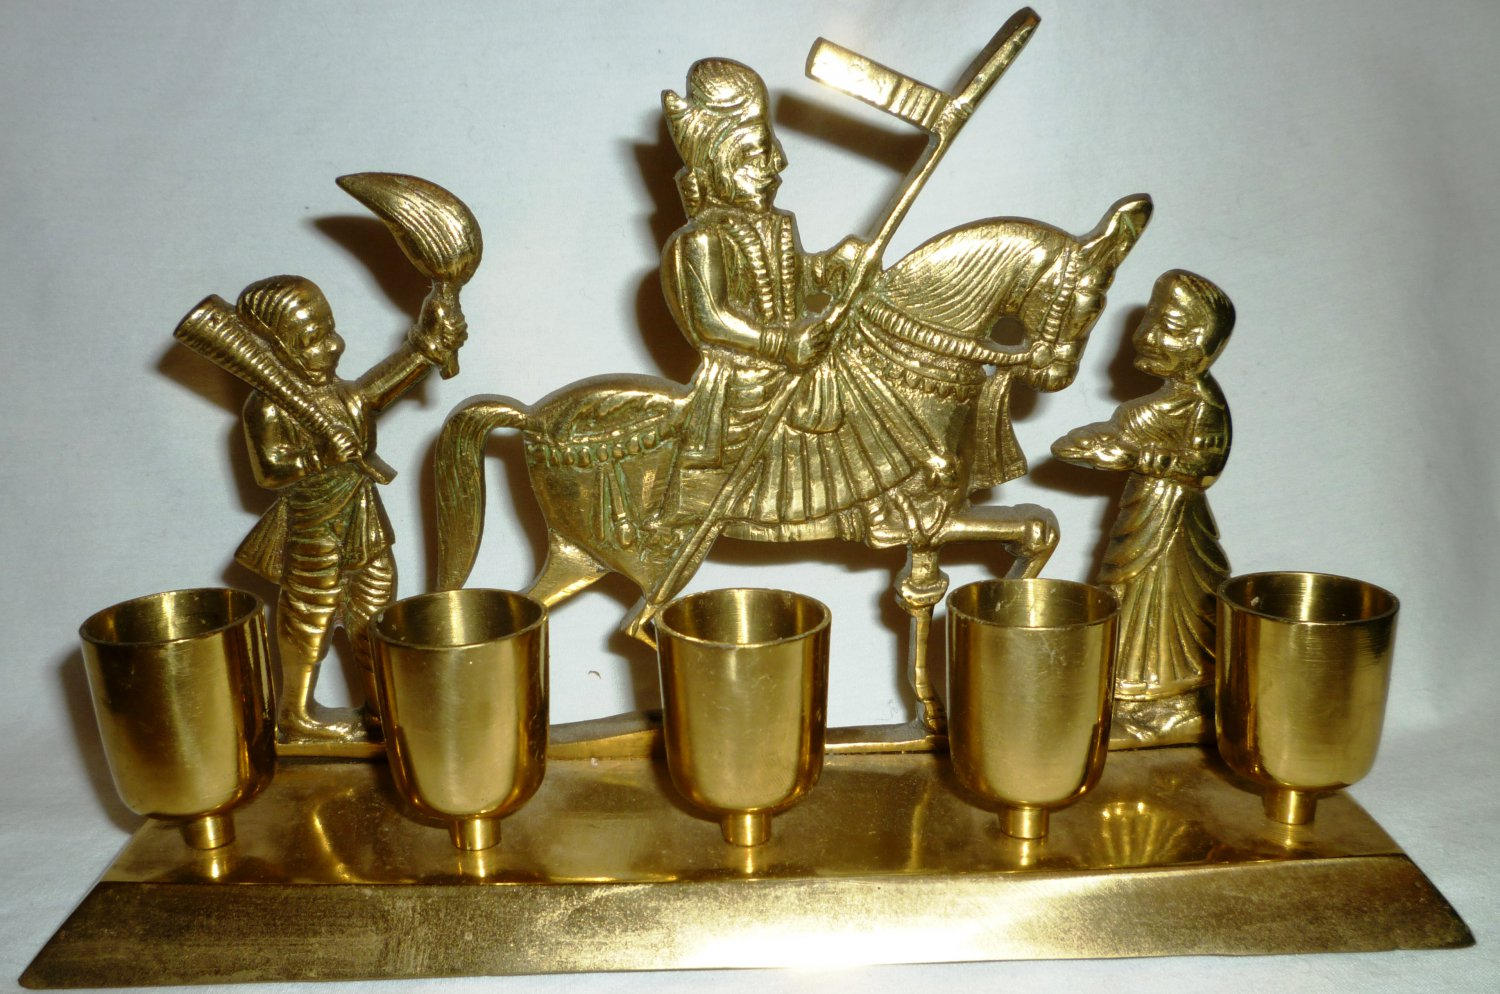 STUNNING VINTAGE SOLID BRASS HINDU SIAMESE WARRIOR ON HORSE 5 CUP CANDLE HOLDER